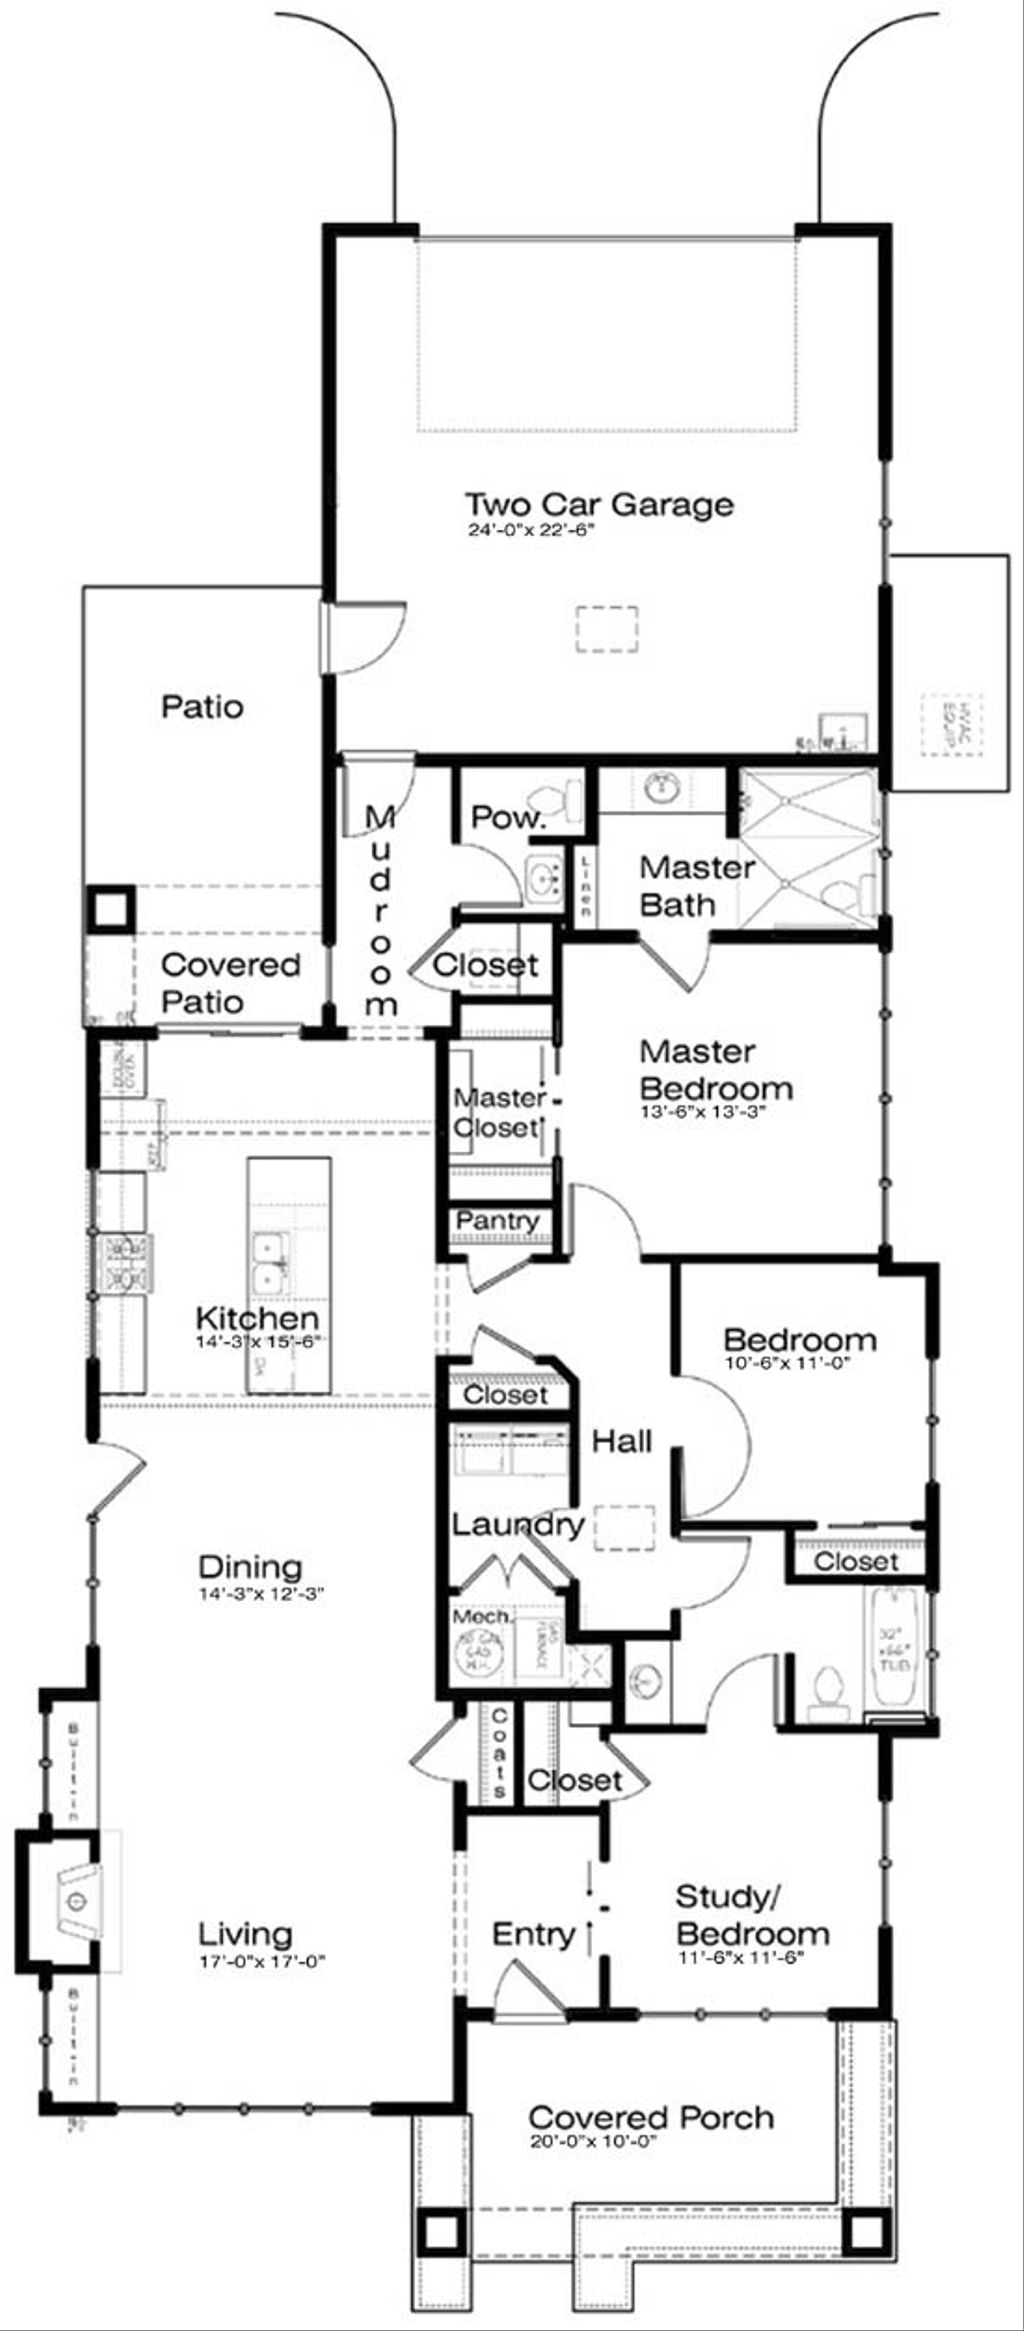 Prairie Style House Plan - 3 Beds 2.5 Baths 1851 Sq/Ft Plan ... on narrow home plans with garage, cabin plans with attached garage, foundation with attached garage, narrow lot house plans with side entry garage, narrow lot house plans with detached garage, narrow lot house plans with three car garage,